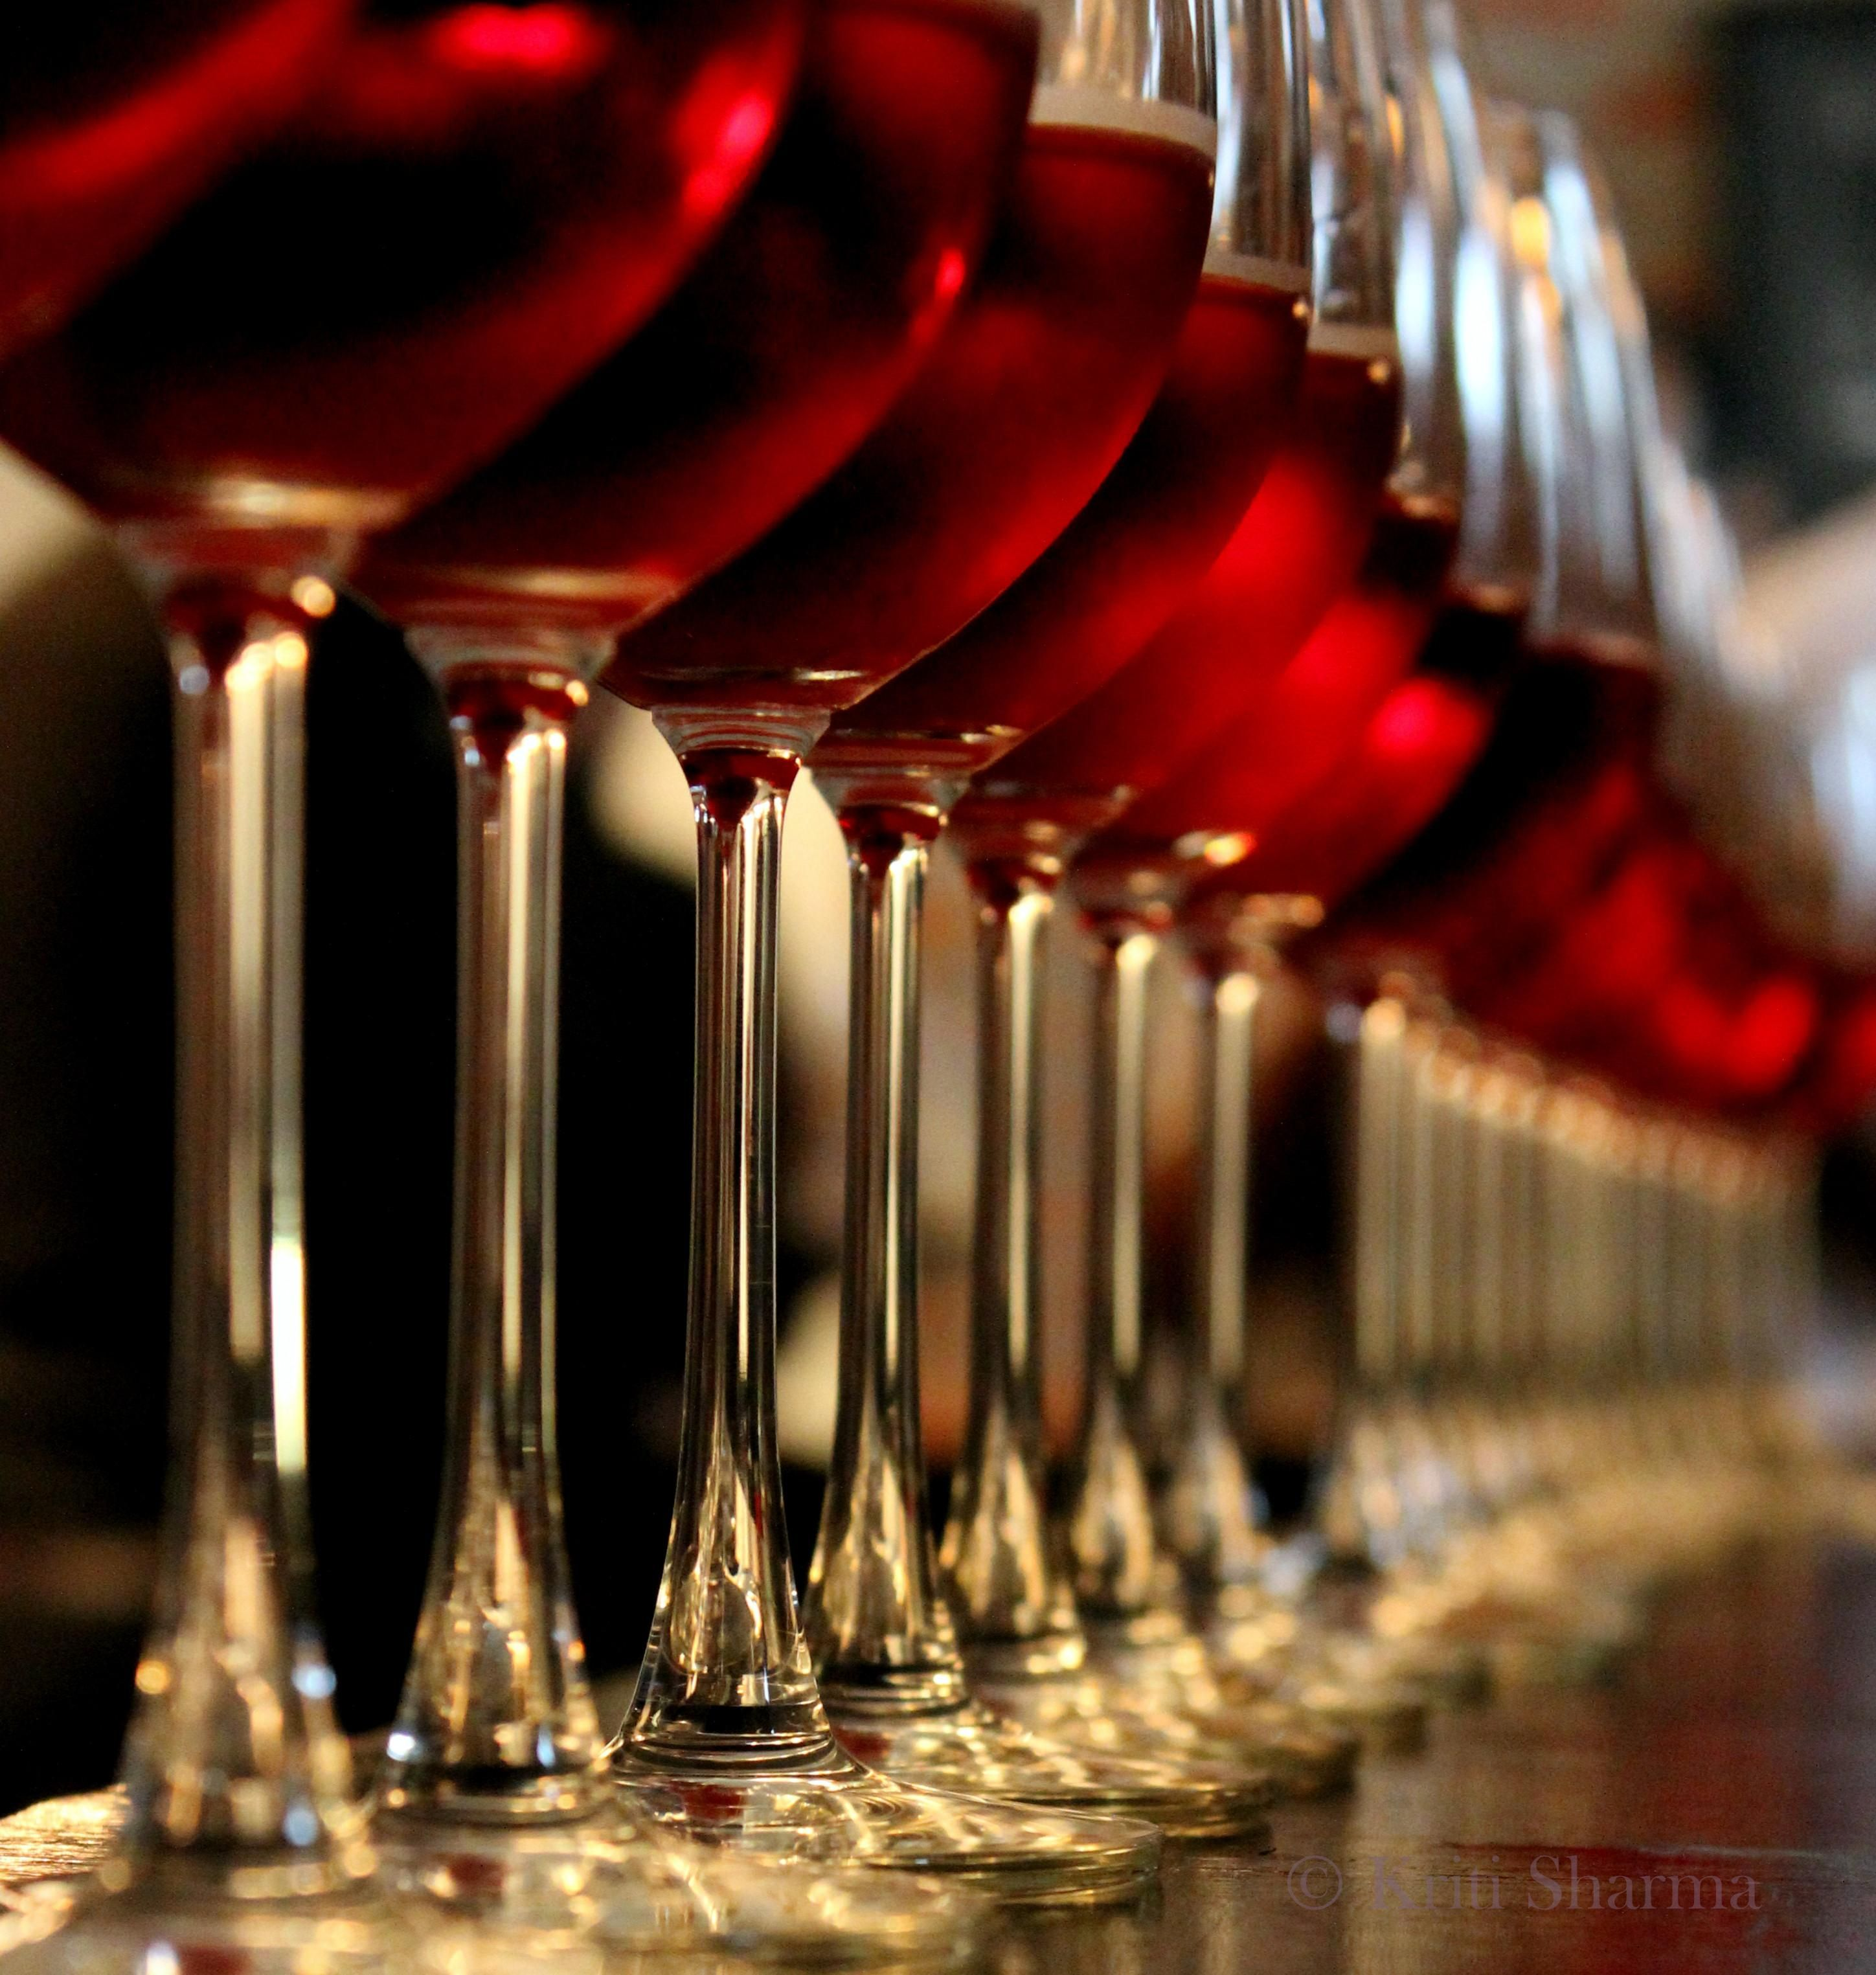 Pin By Ioanna Ypo On Wine Photography Wine Glass Photography Italian Wine Wine Photography